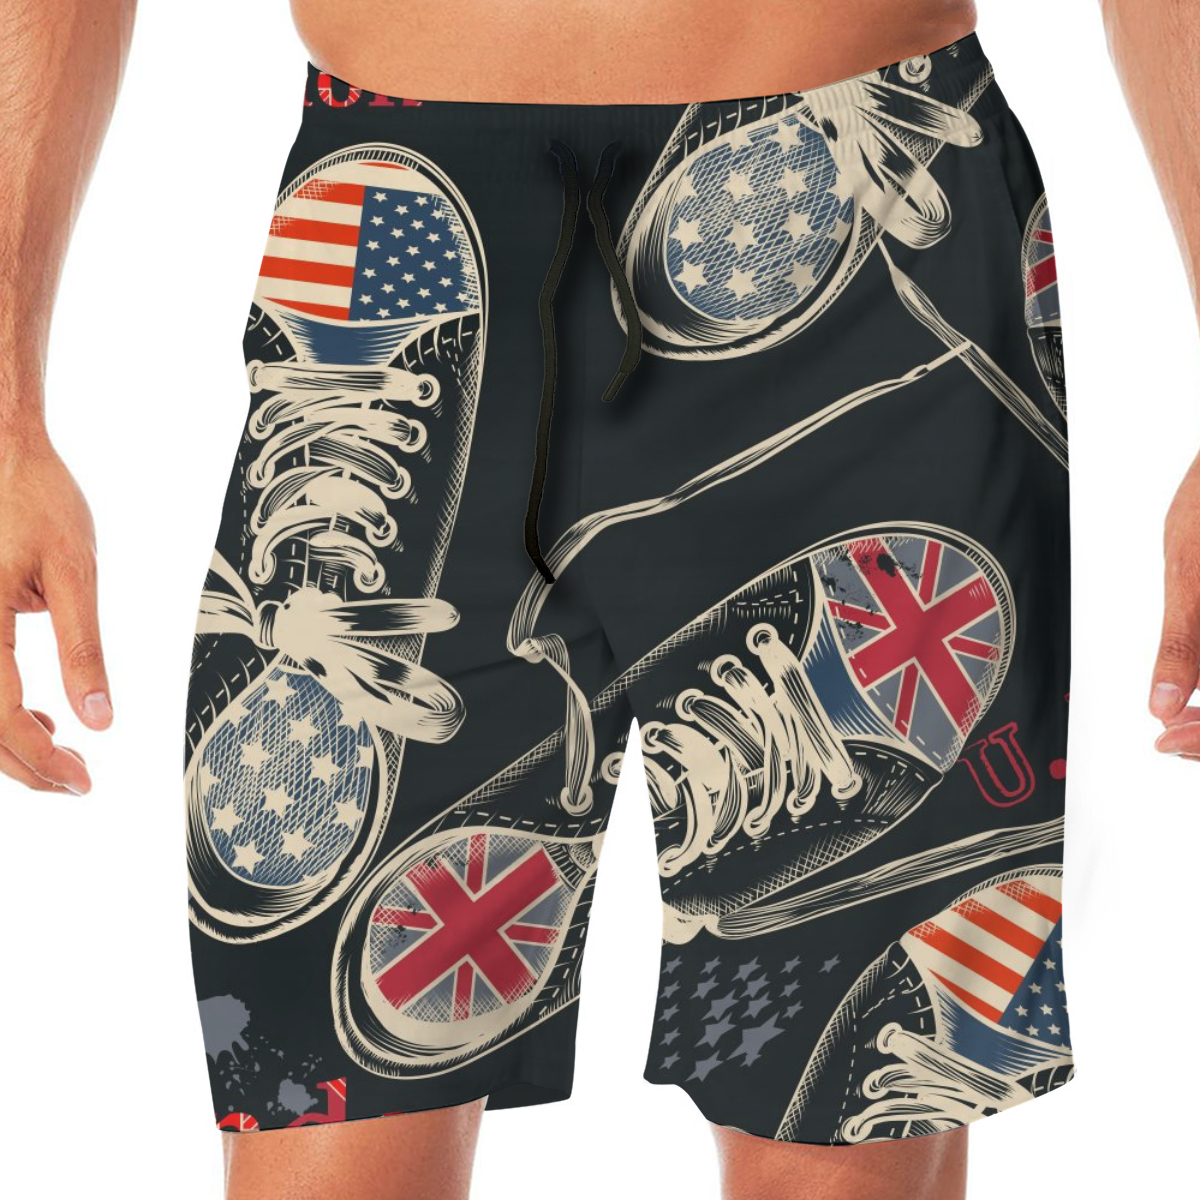 Fashion Sports Boots British And USA Flags Swimming Shorts For Men Swimwear Man Swimsuit Swim Trunks Summer Bathing Beach Wear image